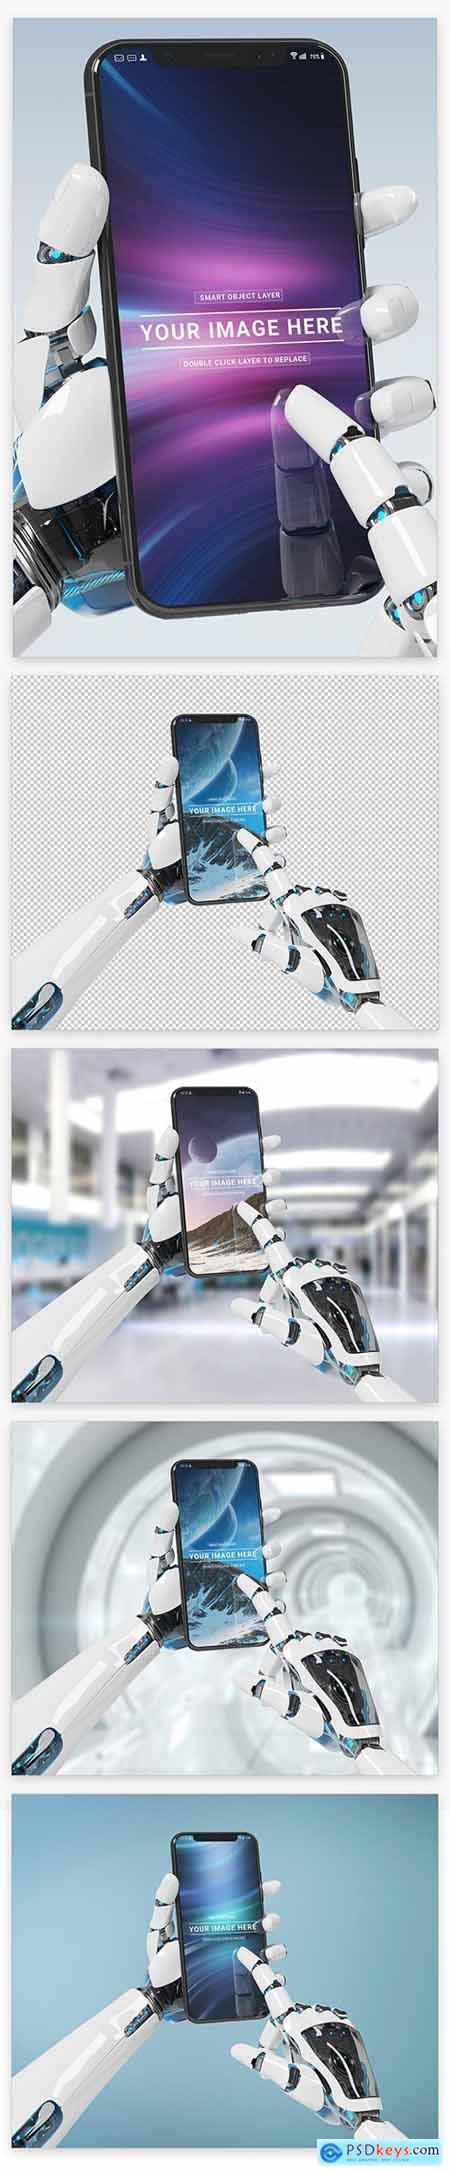 Isolated Smartphone in Robot Hand Mockup 220287945